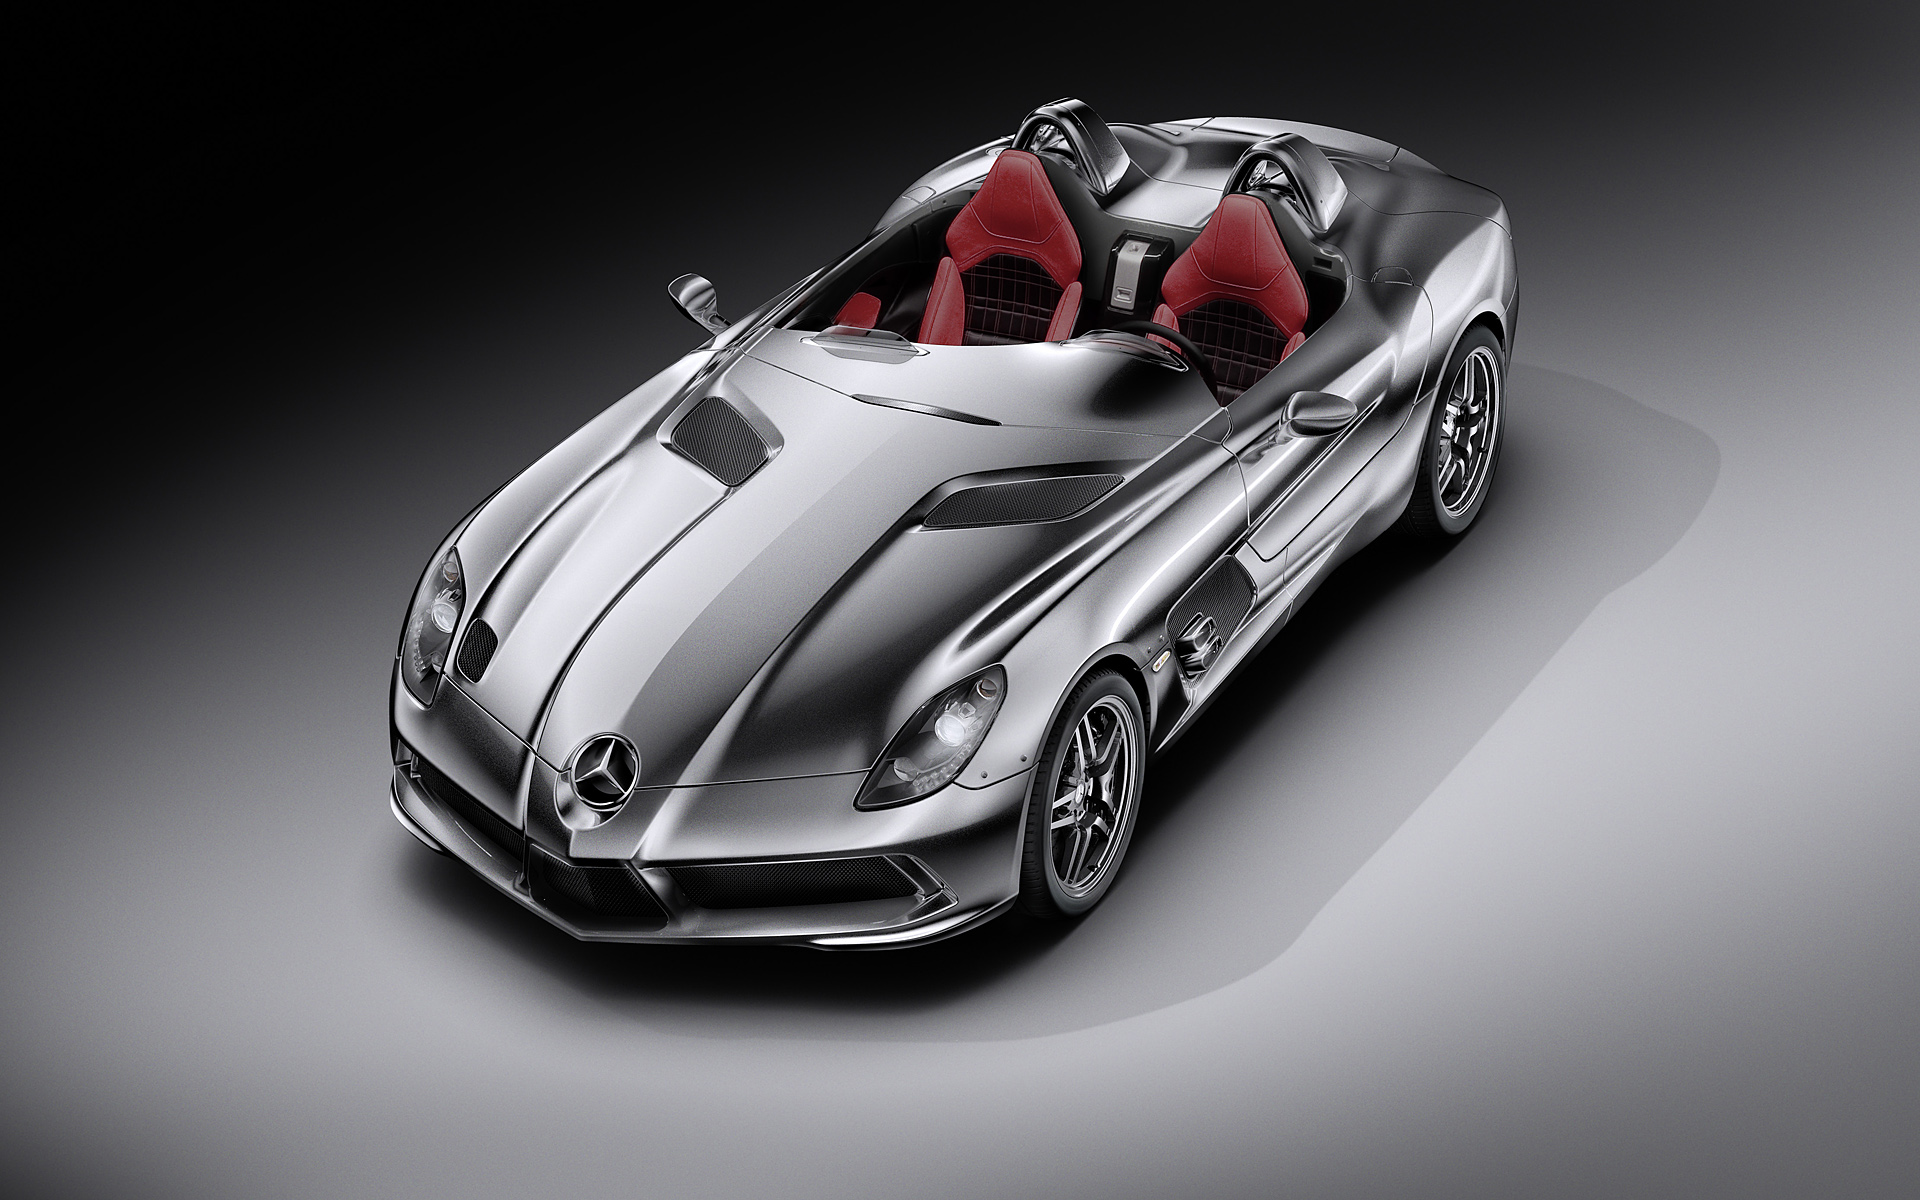 2009 Mercedes-Benz McLaren SLR Stirling Moss Wallpaper.